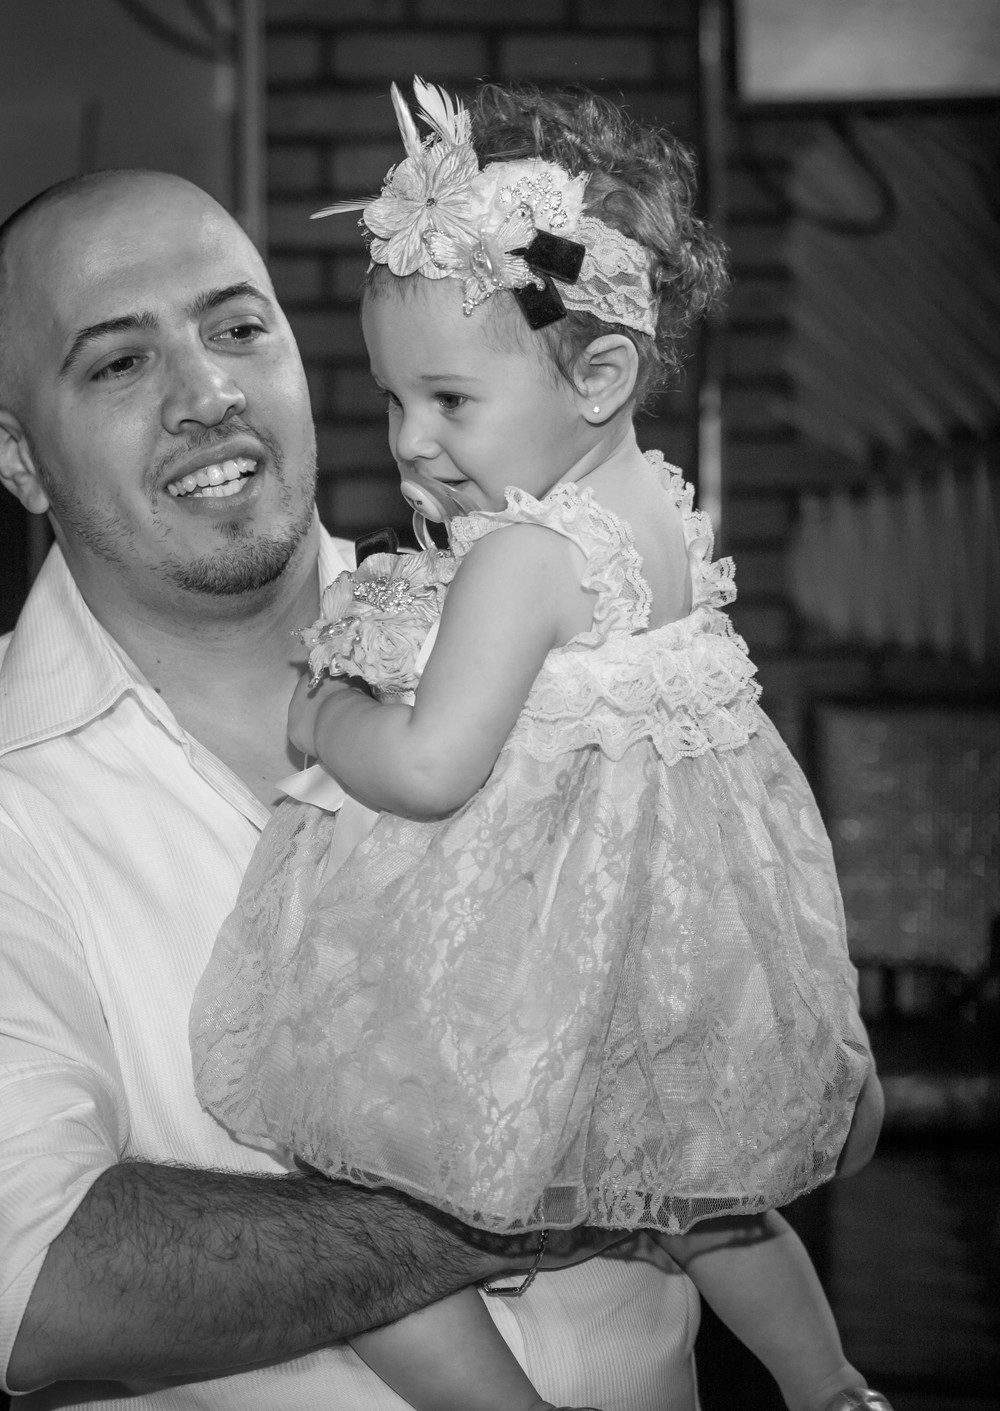 Sofias_First_Birthday_Matthew_Gambino_Photography220.jpg